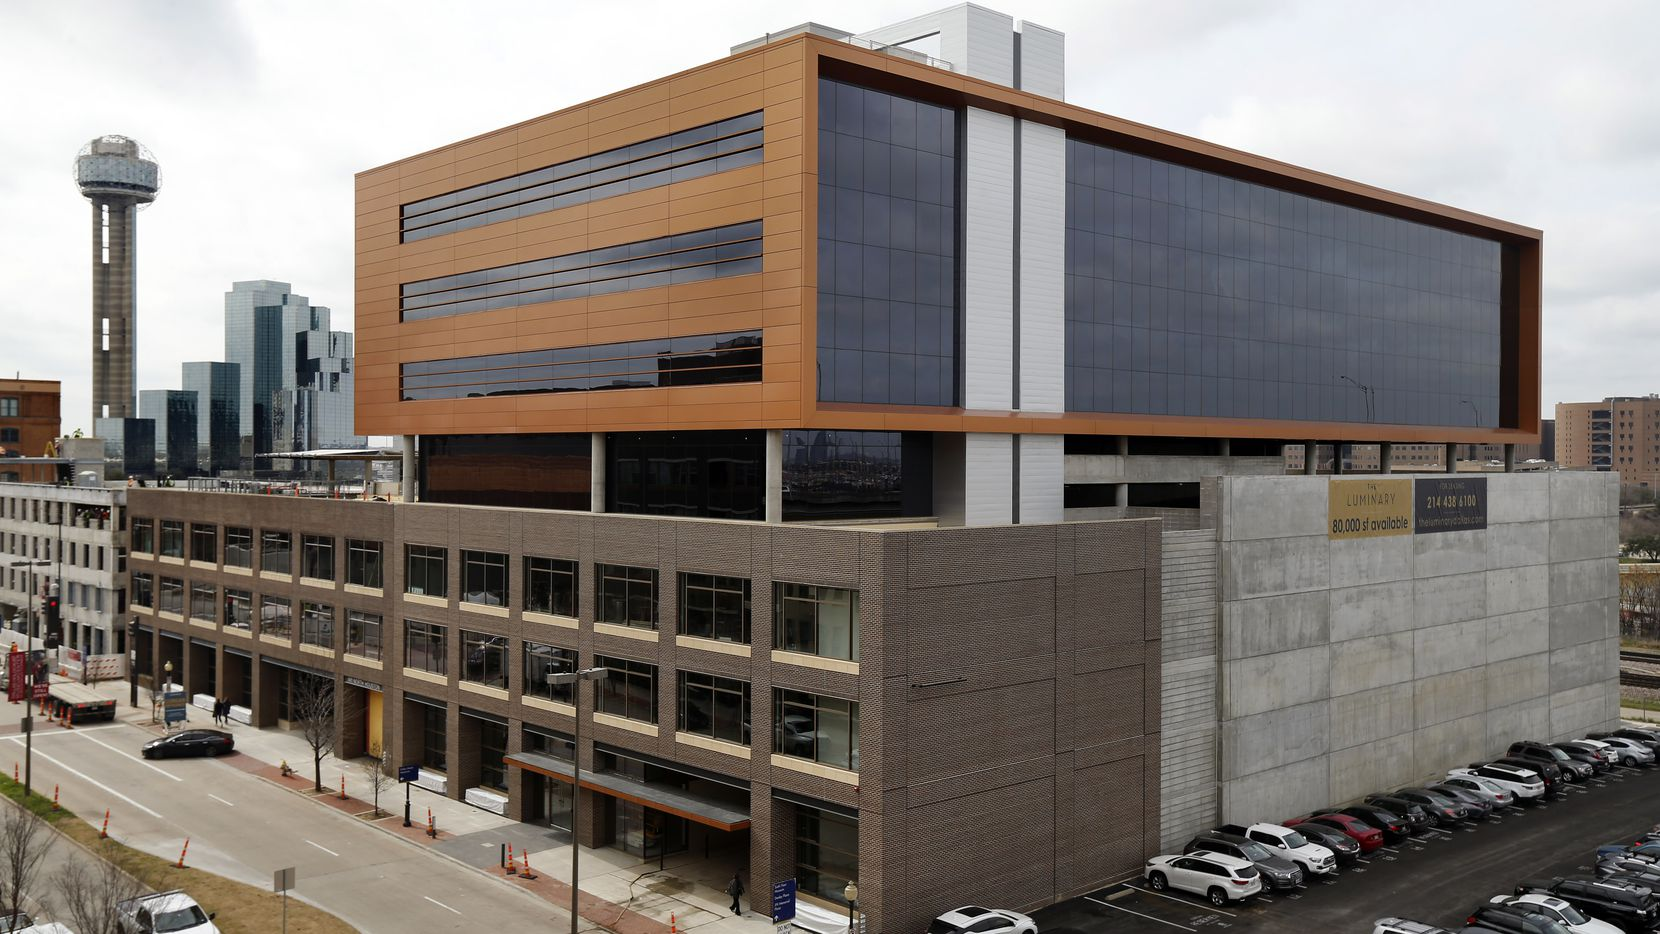 The Luminary, a seven-story office building by Crescent Real Estate and Corgan, is near completion in downtown Dallas.